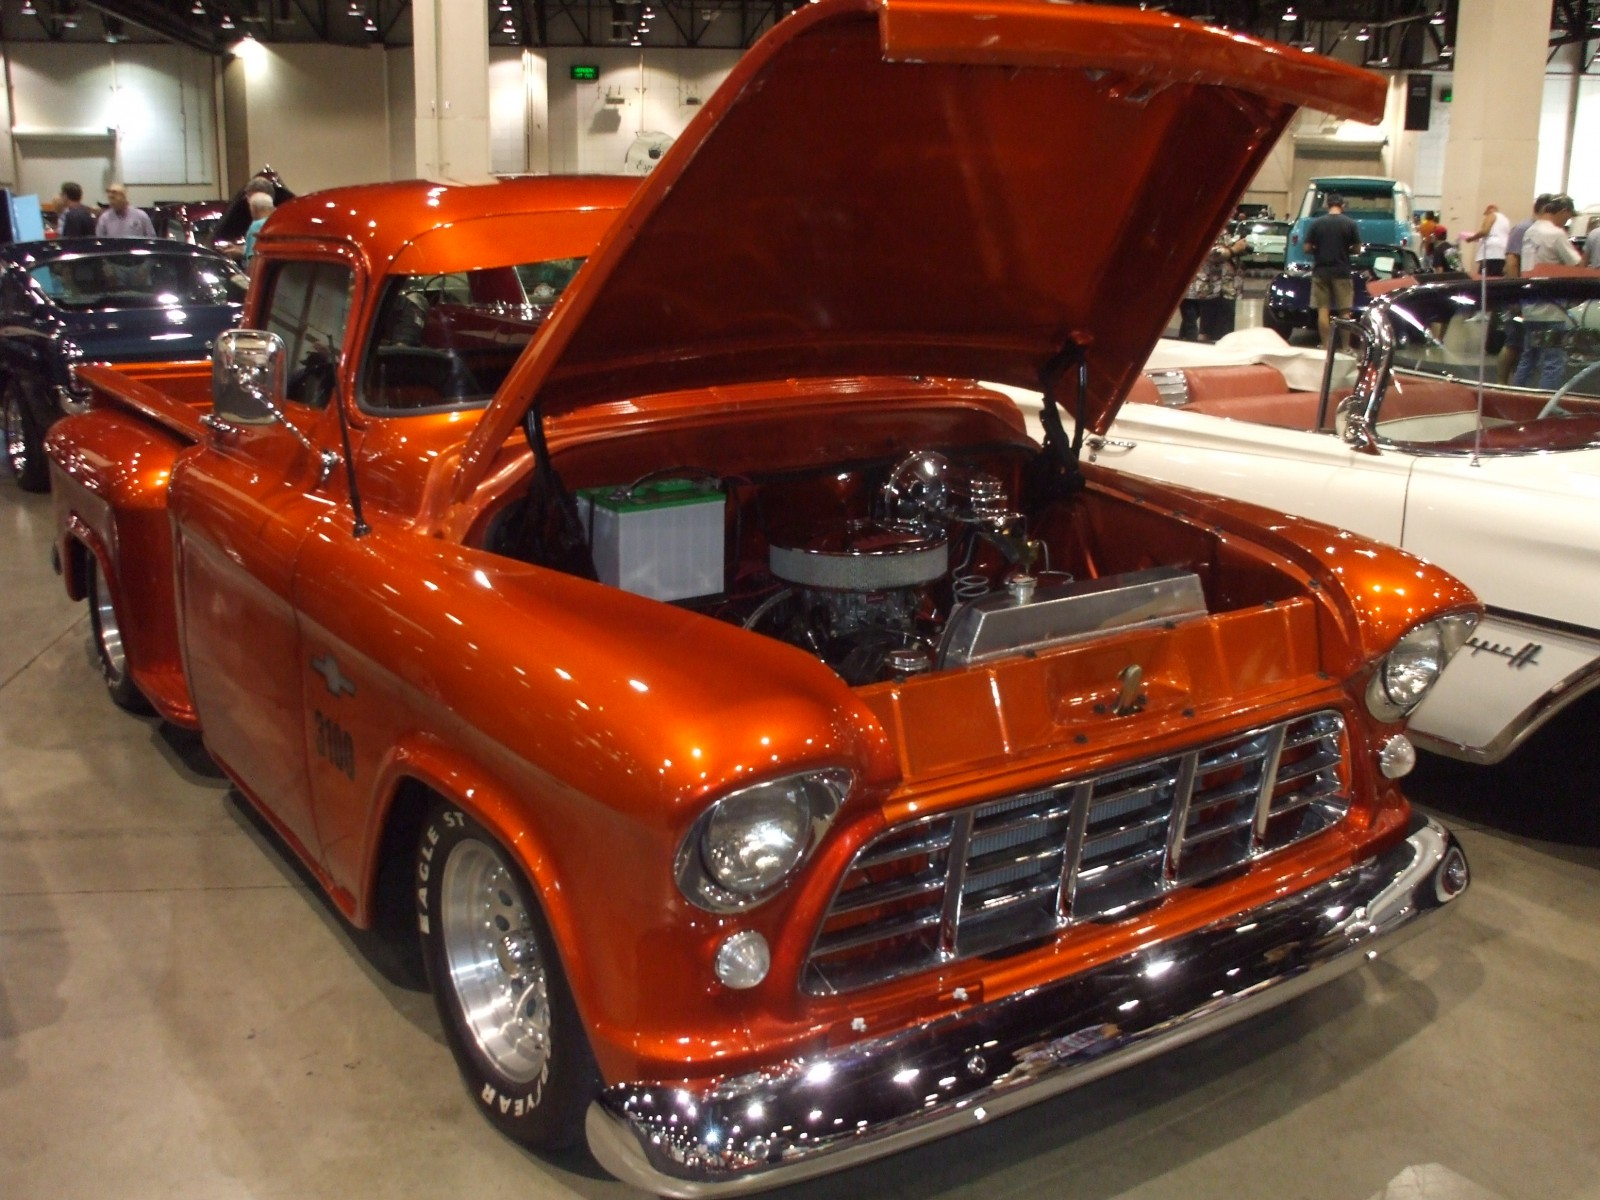 1957 Chevy Truck Paint Colors Our 20 Favorite Rides From The Hot August Nights Barrett Jackson Auction Onallcylinders